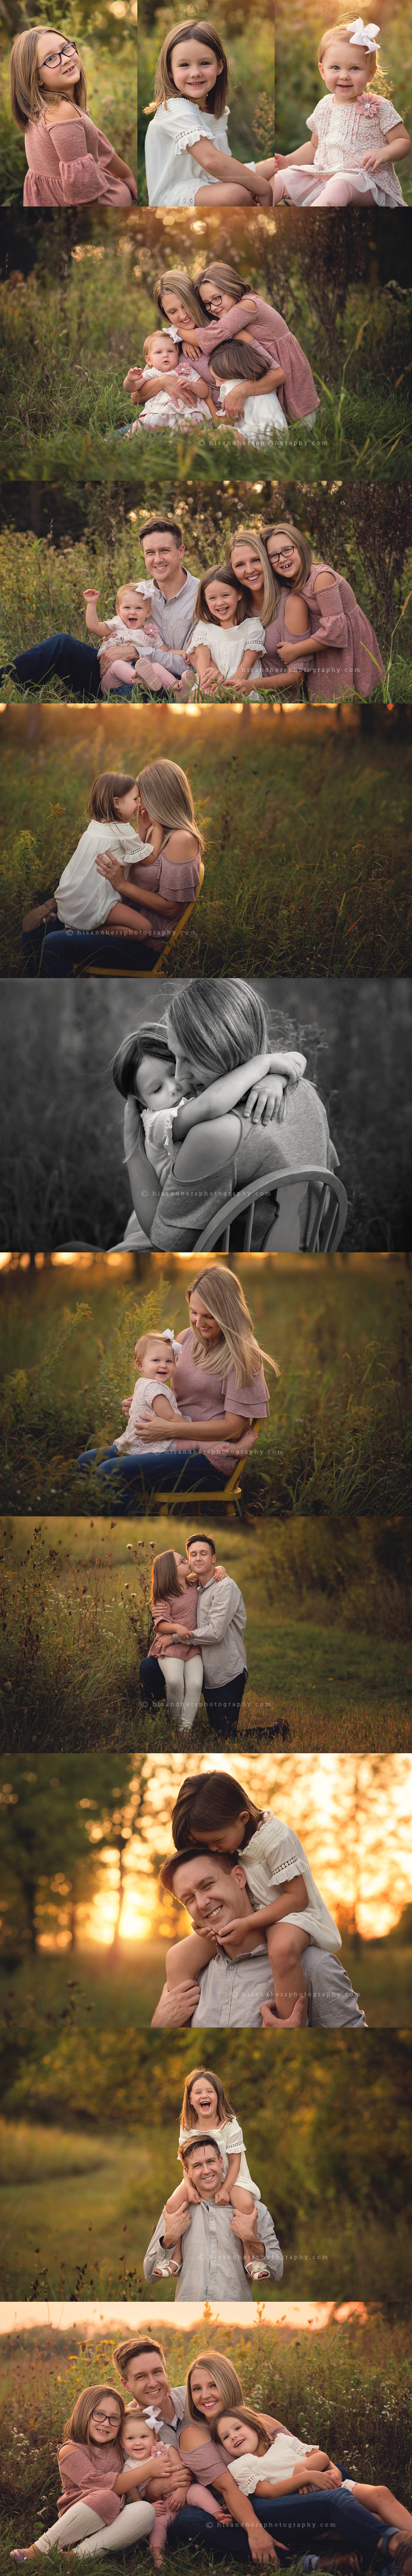 des moines iowa family photographer family portraits pics pictures best iowa family photographer